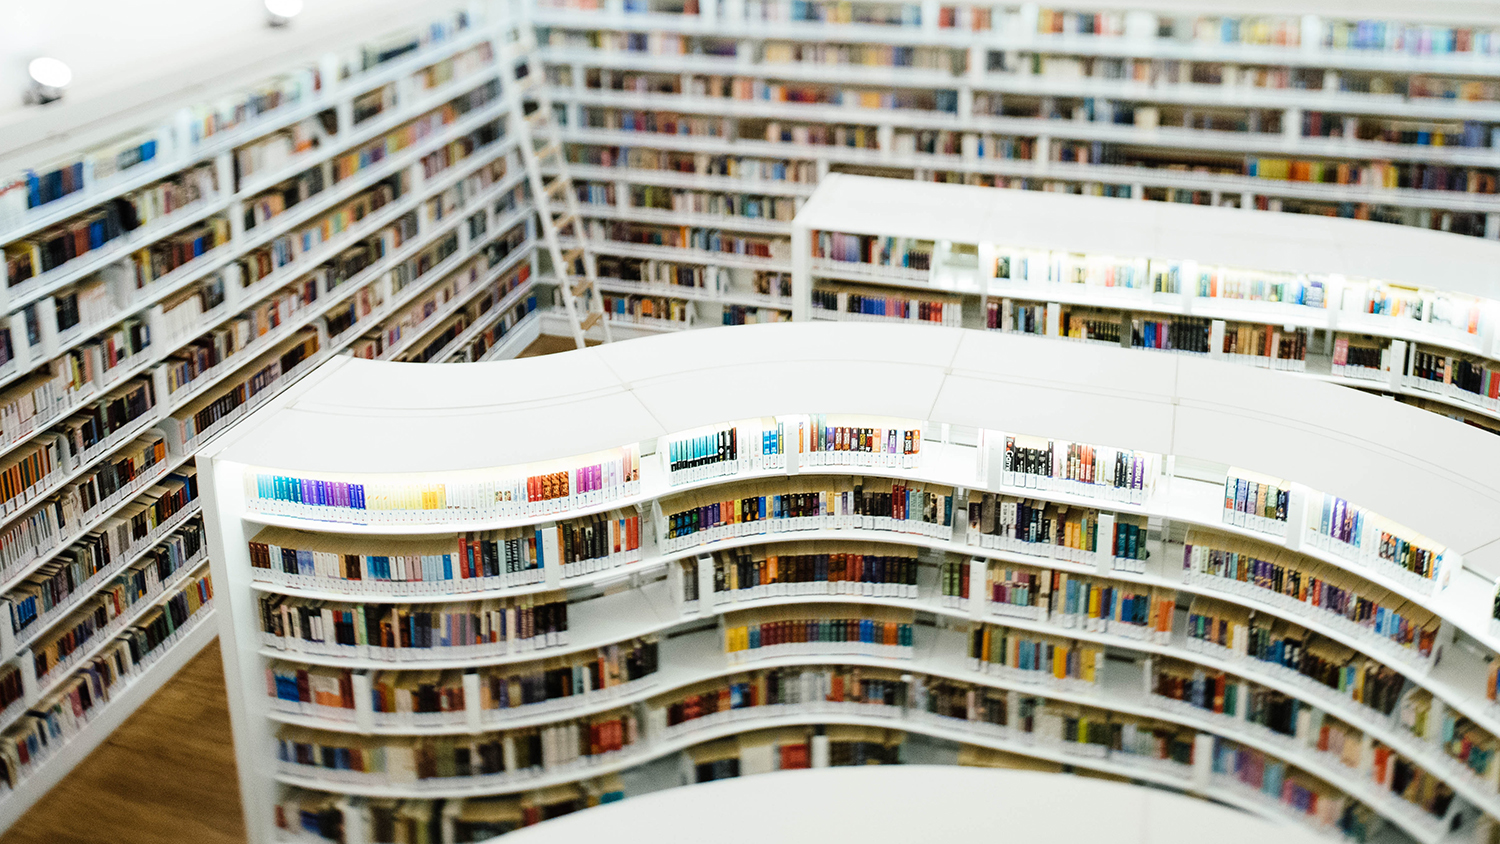 curving library shelves